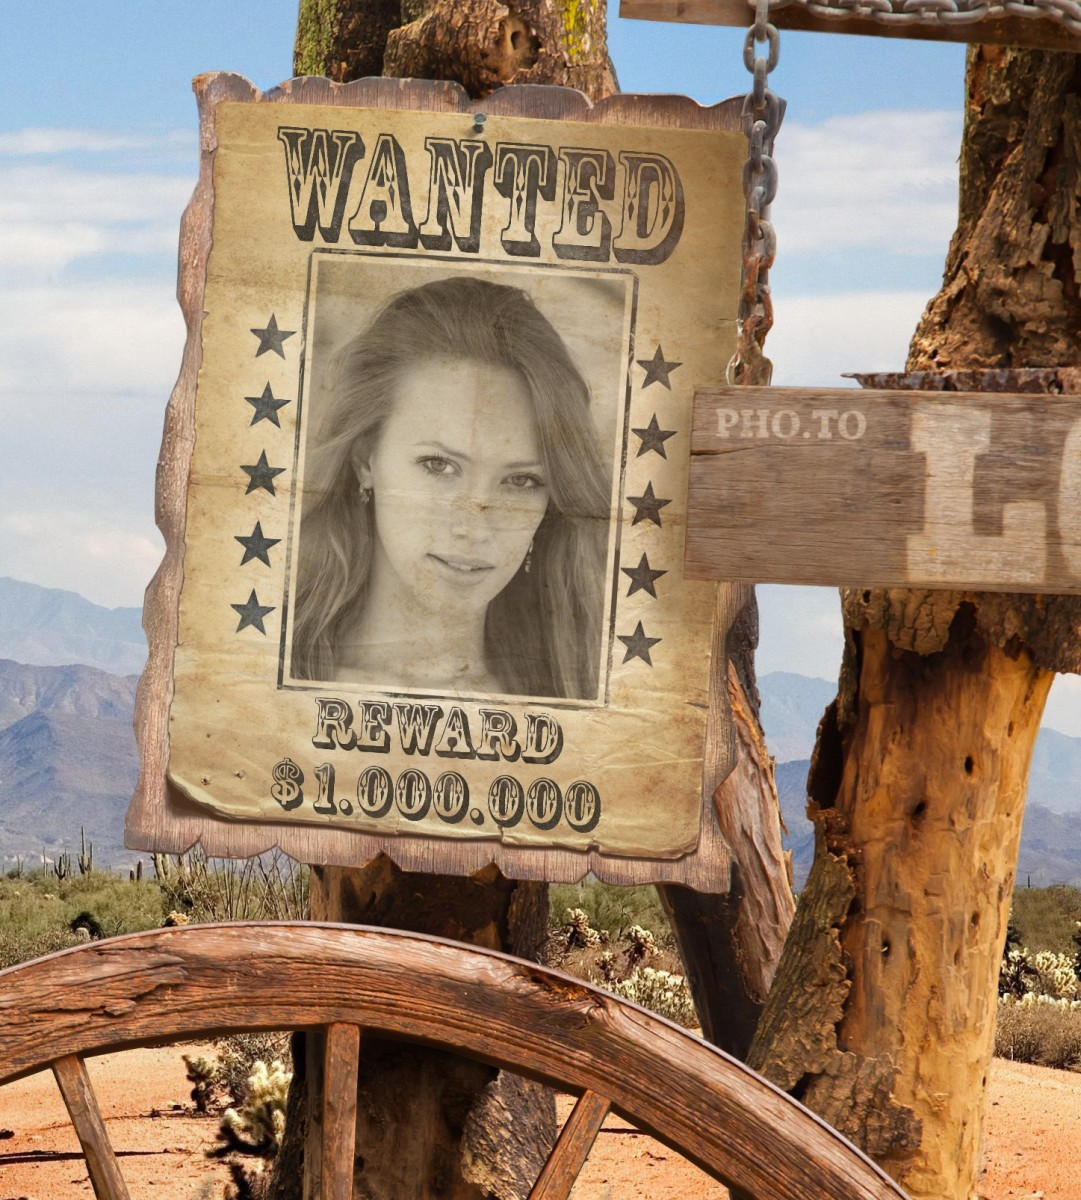 create your own wanted poster with wanted poster generator